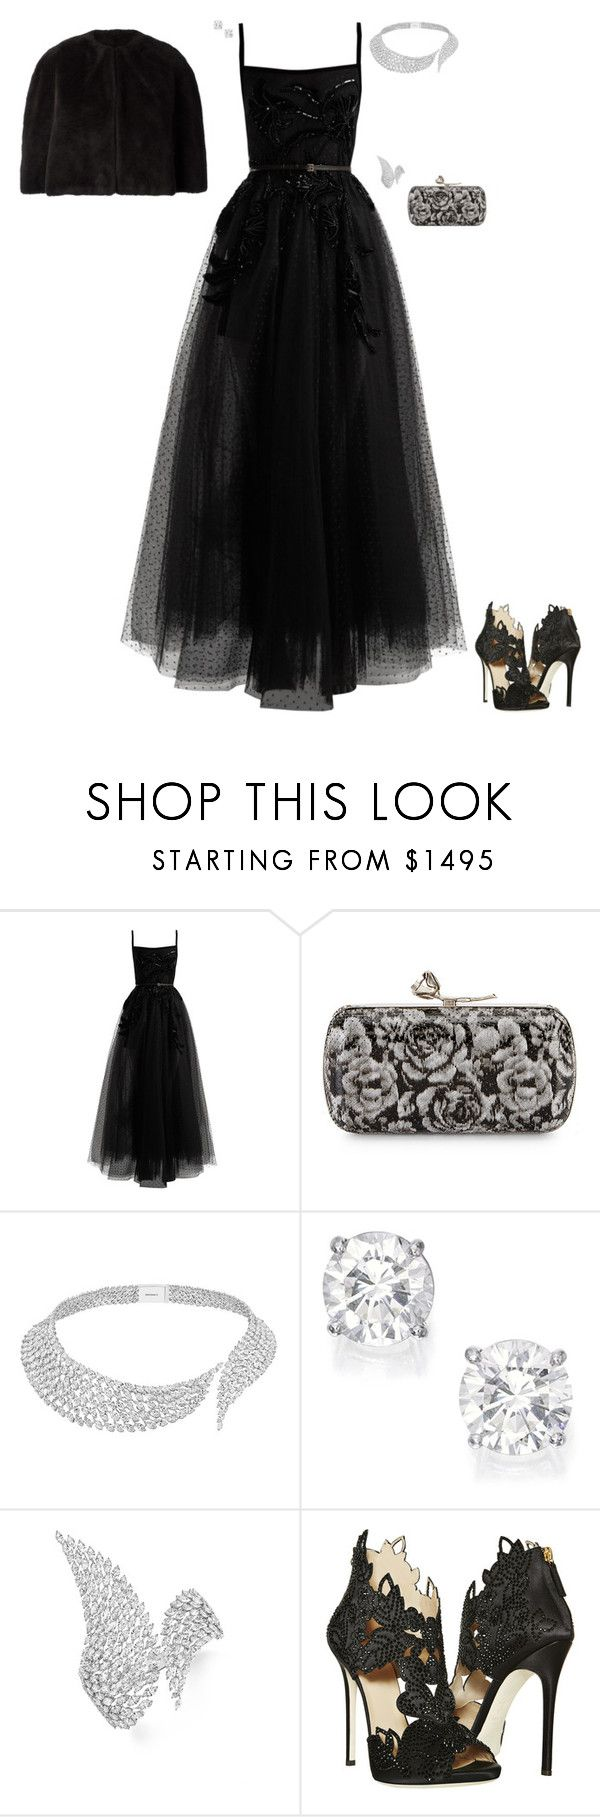 """Beneficial Dance"" by stylev ❤ liked on Polyvore featuring Elie Saab, Lela Rose, Messika, La Perla and Yohji Yamamoto"